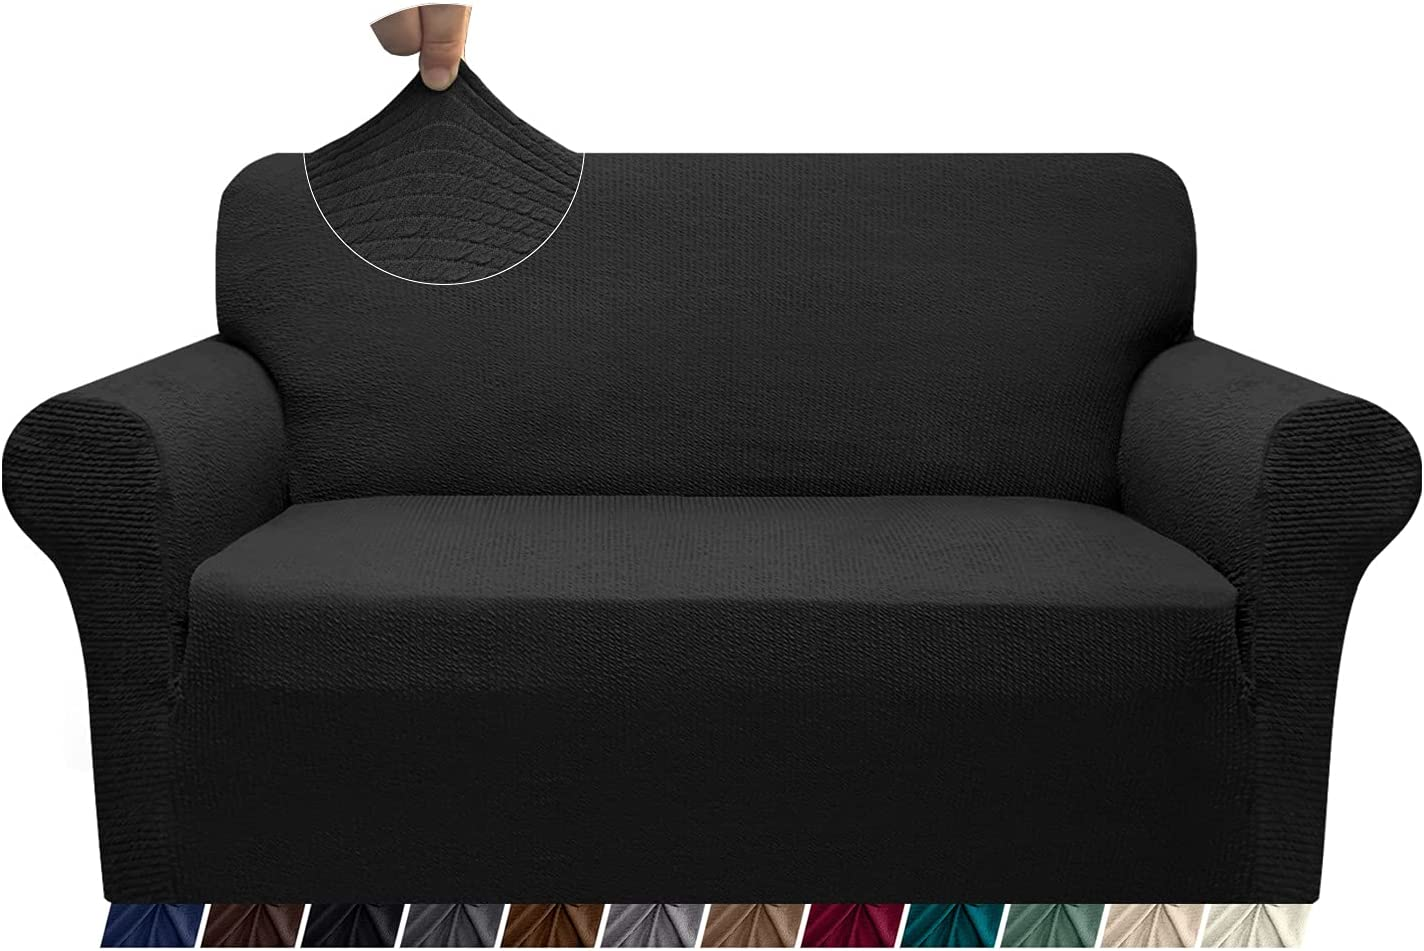 Granbest Sofa Slipcover 1-Piece Striped Sofa Cover for 2 Cushion Couch Thick Luxury Couch Cover for Living Room Soft Furniture Protector Dog Cat Pet Friendly(Medium, Black)